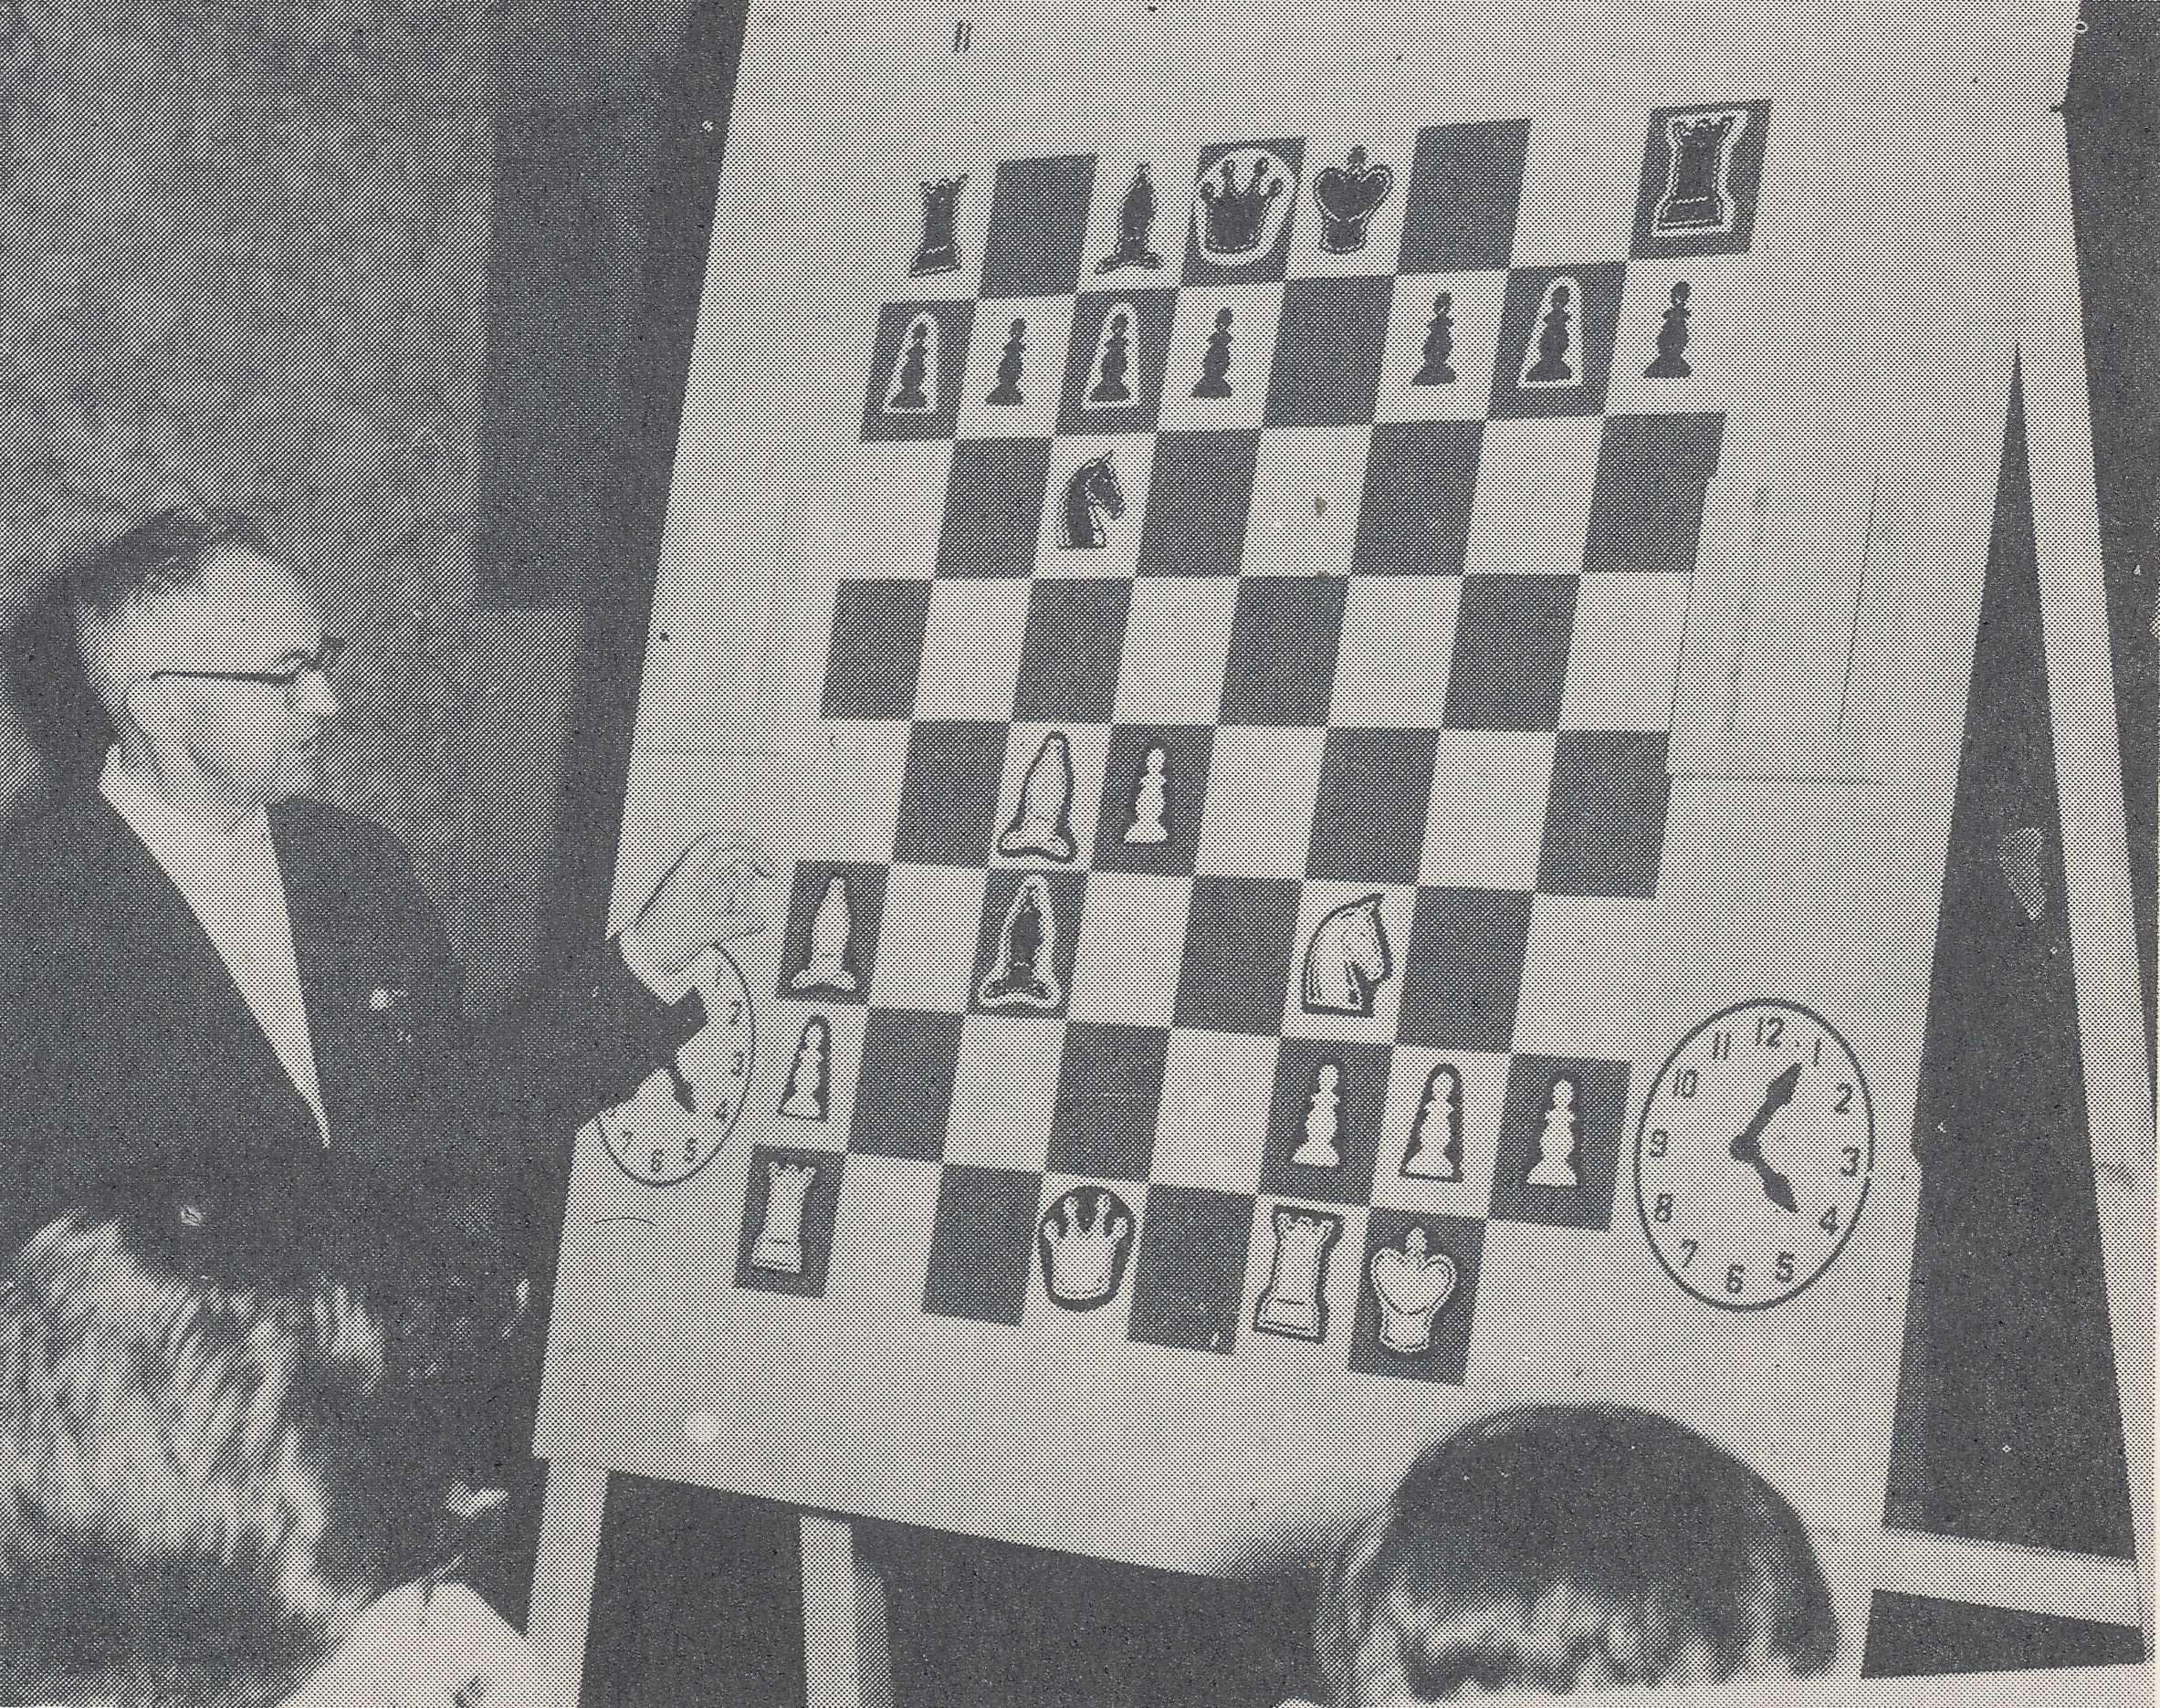 Bob doing one of the things he loved best : teaching. He was discussing a position at Havana 1965. Dr JR Capablanca, son of the former world champion, on the right, interpreted.